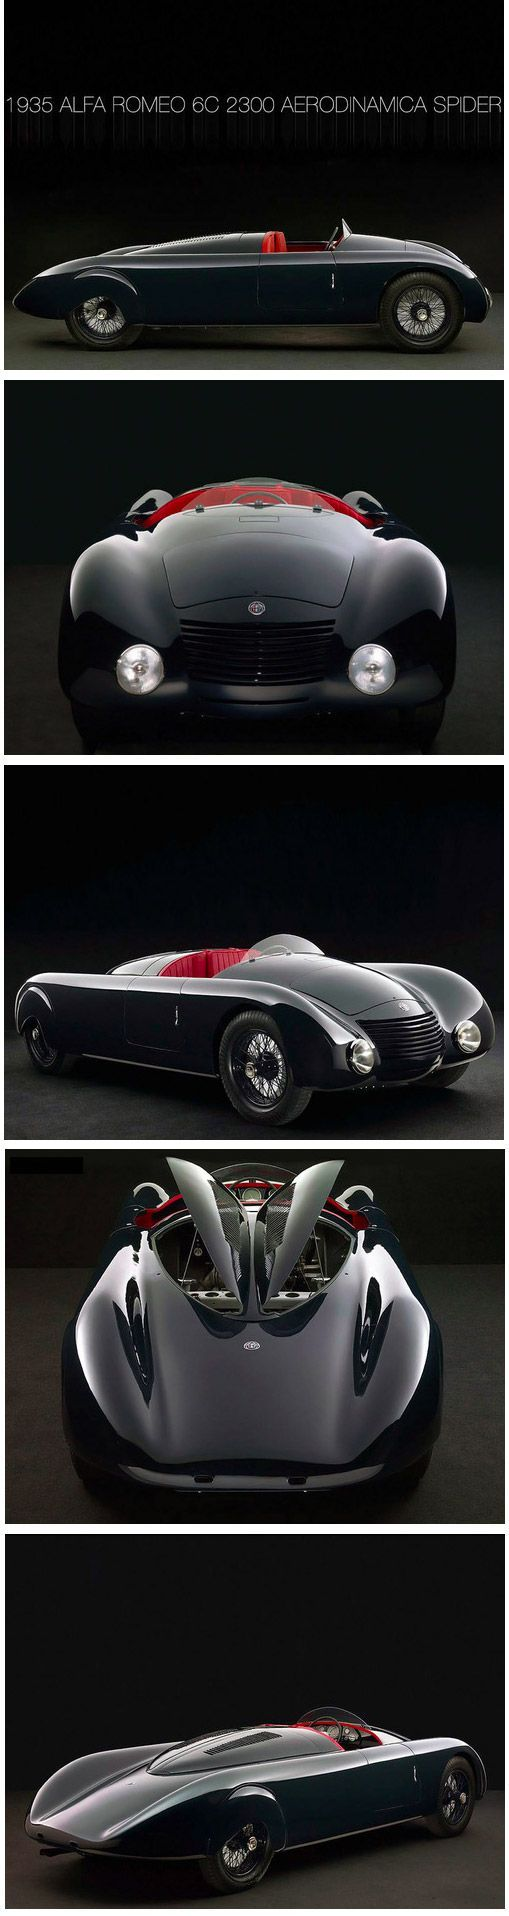 ❤ The Best of Alfa Roméo... ❤ (1935 Alfa Roméo 6C 2300 Aerodinamica Spyder)